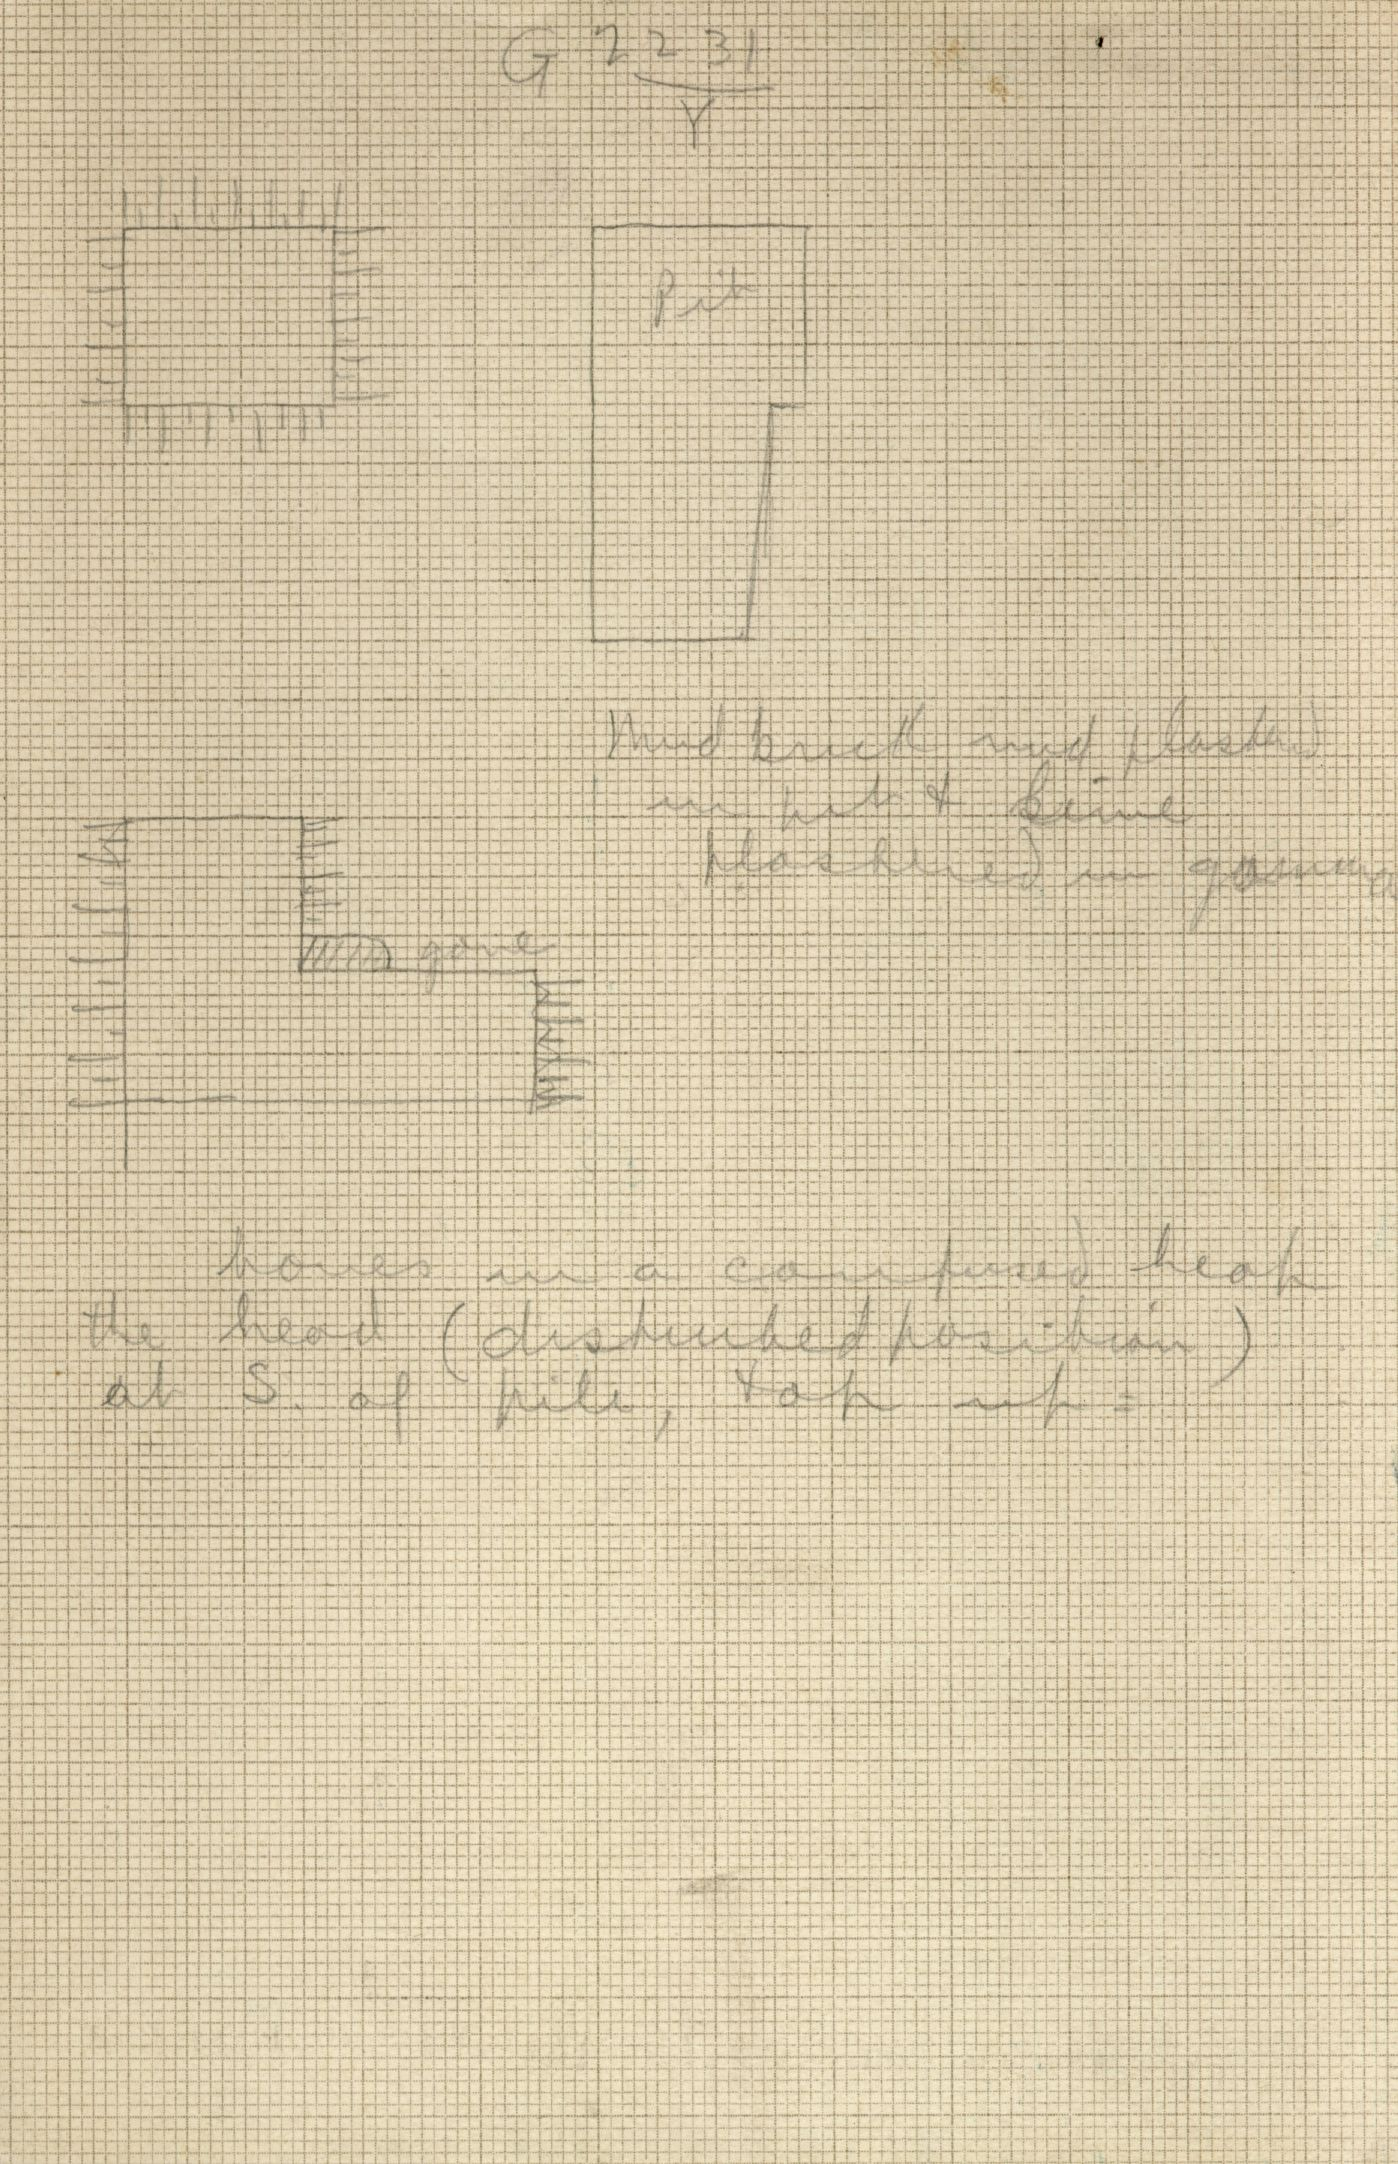 Maps and plans: G 2230+2231: G 2231, Shaft Y